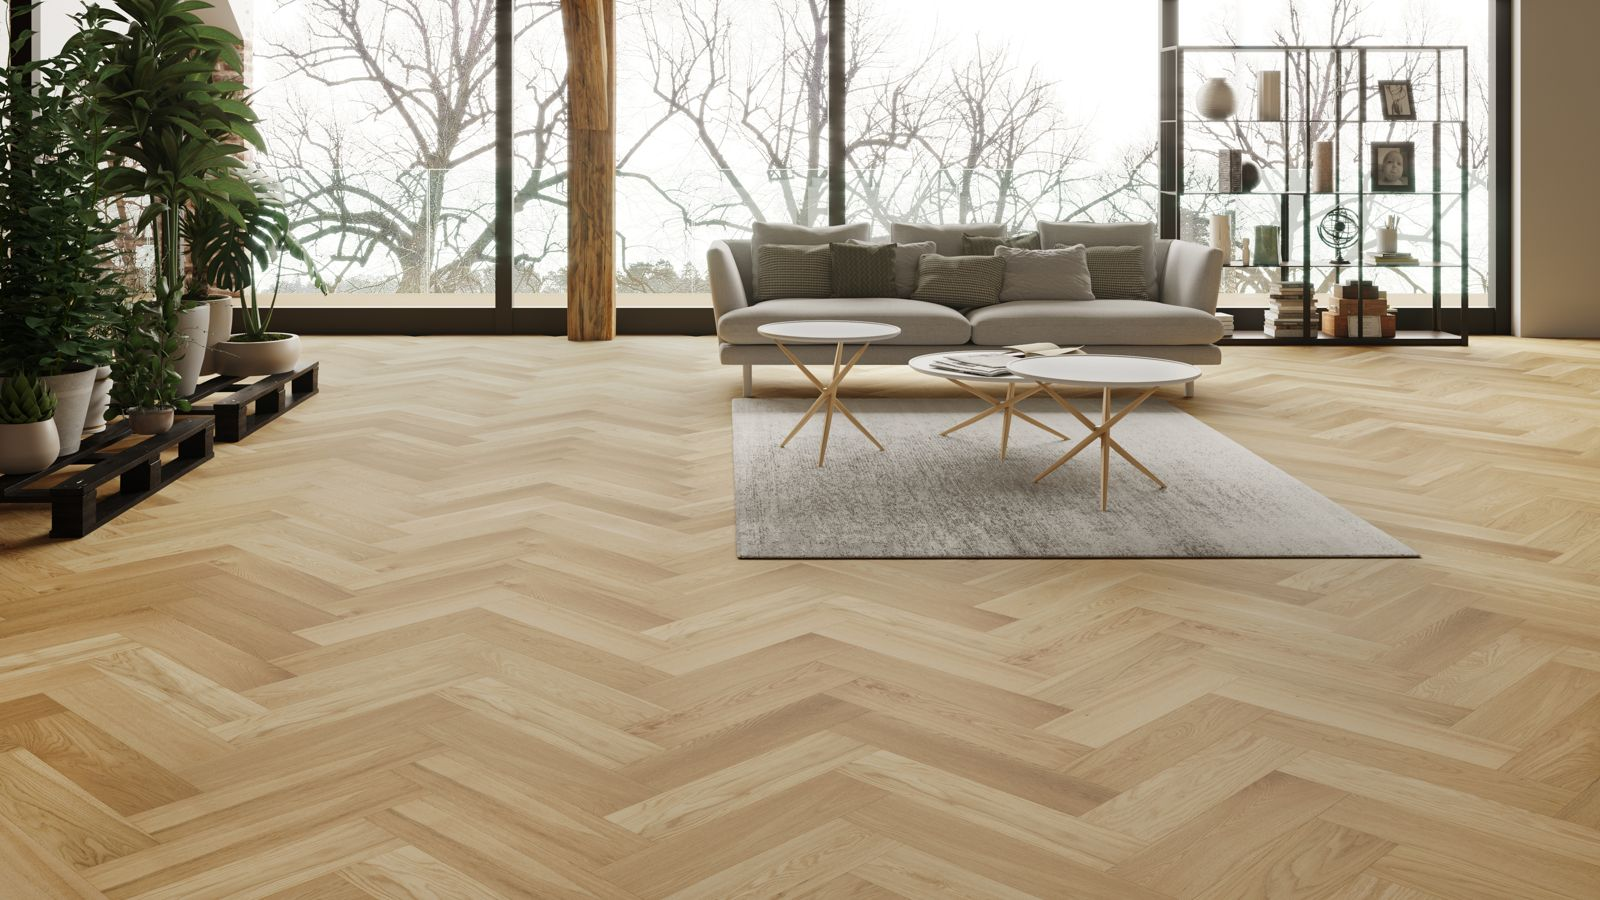 5 Reasons Why Timber Flooring Is A Stylish And Sophisticated Flooring Options